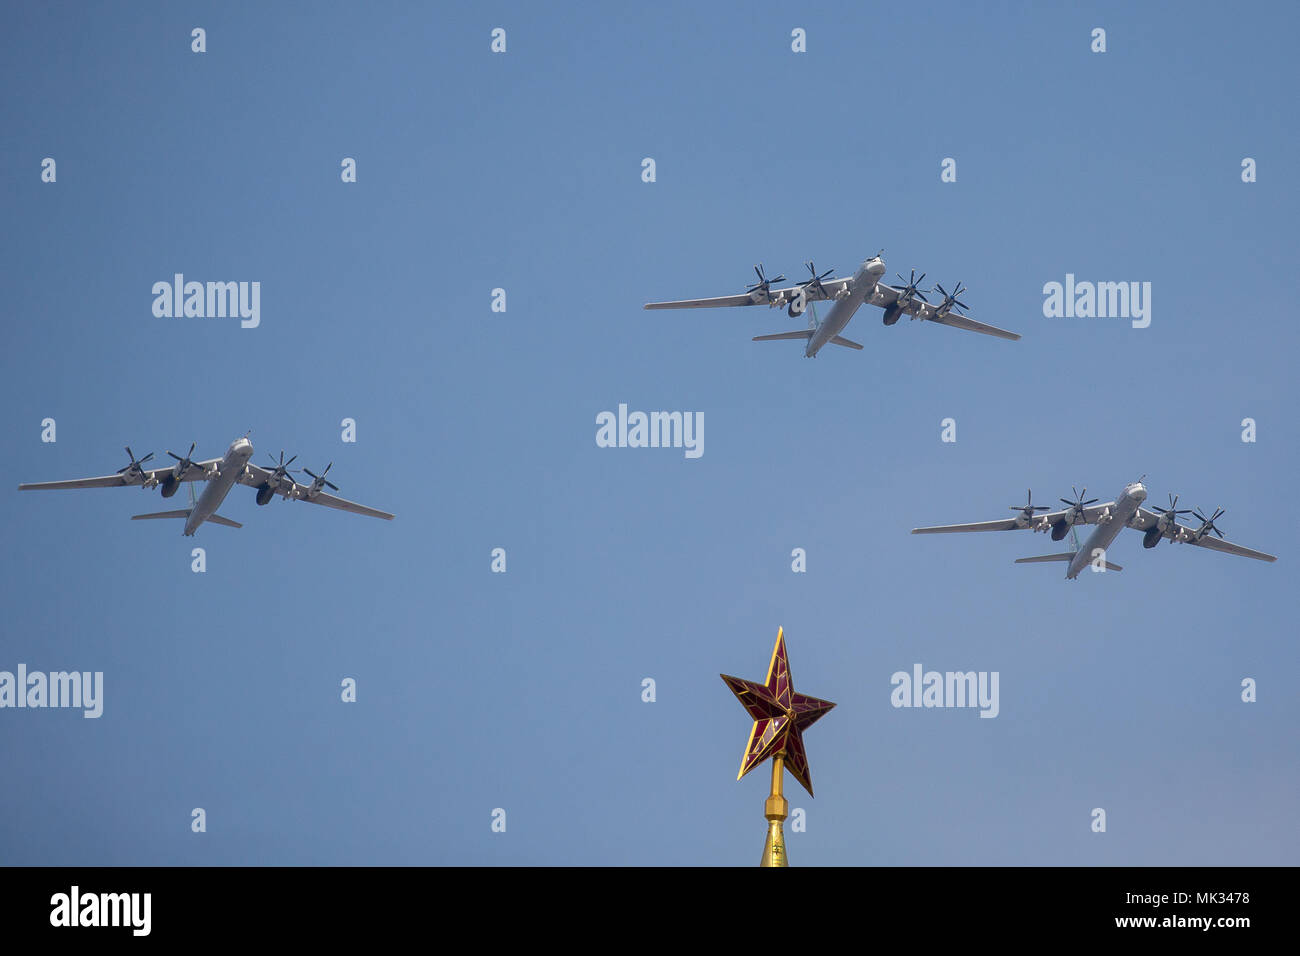 Moscow, Russia. 4th May, 2018. Russian Air Force Tupolev Tu-95MS four-engine turboprop-powered strategic bomber and missile carrier fly in formation during a rehearsal of the upcoming Victory Day air show marking the 73rd anniversary of the victory over Nazi Germany in the 1941-45 Great Patriotic War, the Eastern Front of World War II. Credit: Victor Vytolskiy/Alamy Live News - Stock Image